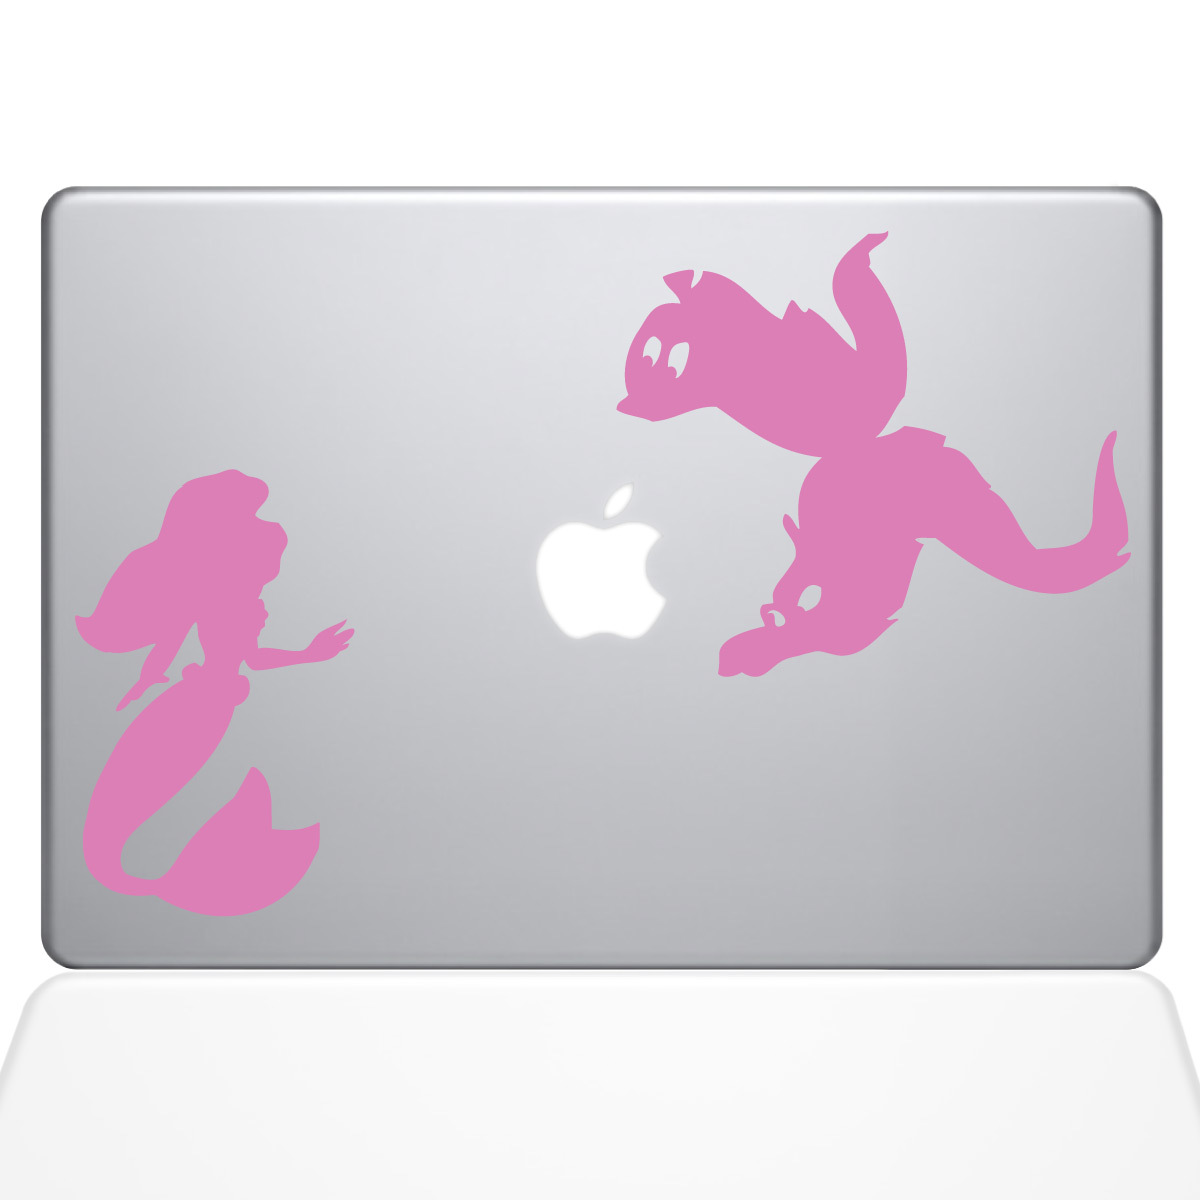 Little Mermaid Mac Decal Sticker